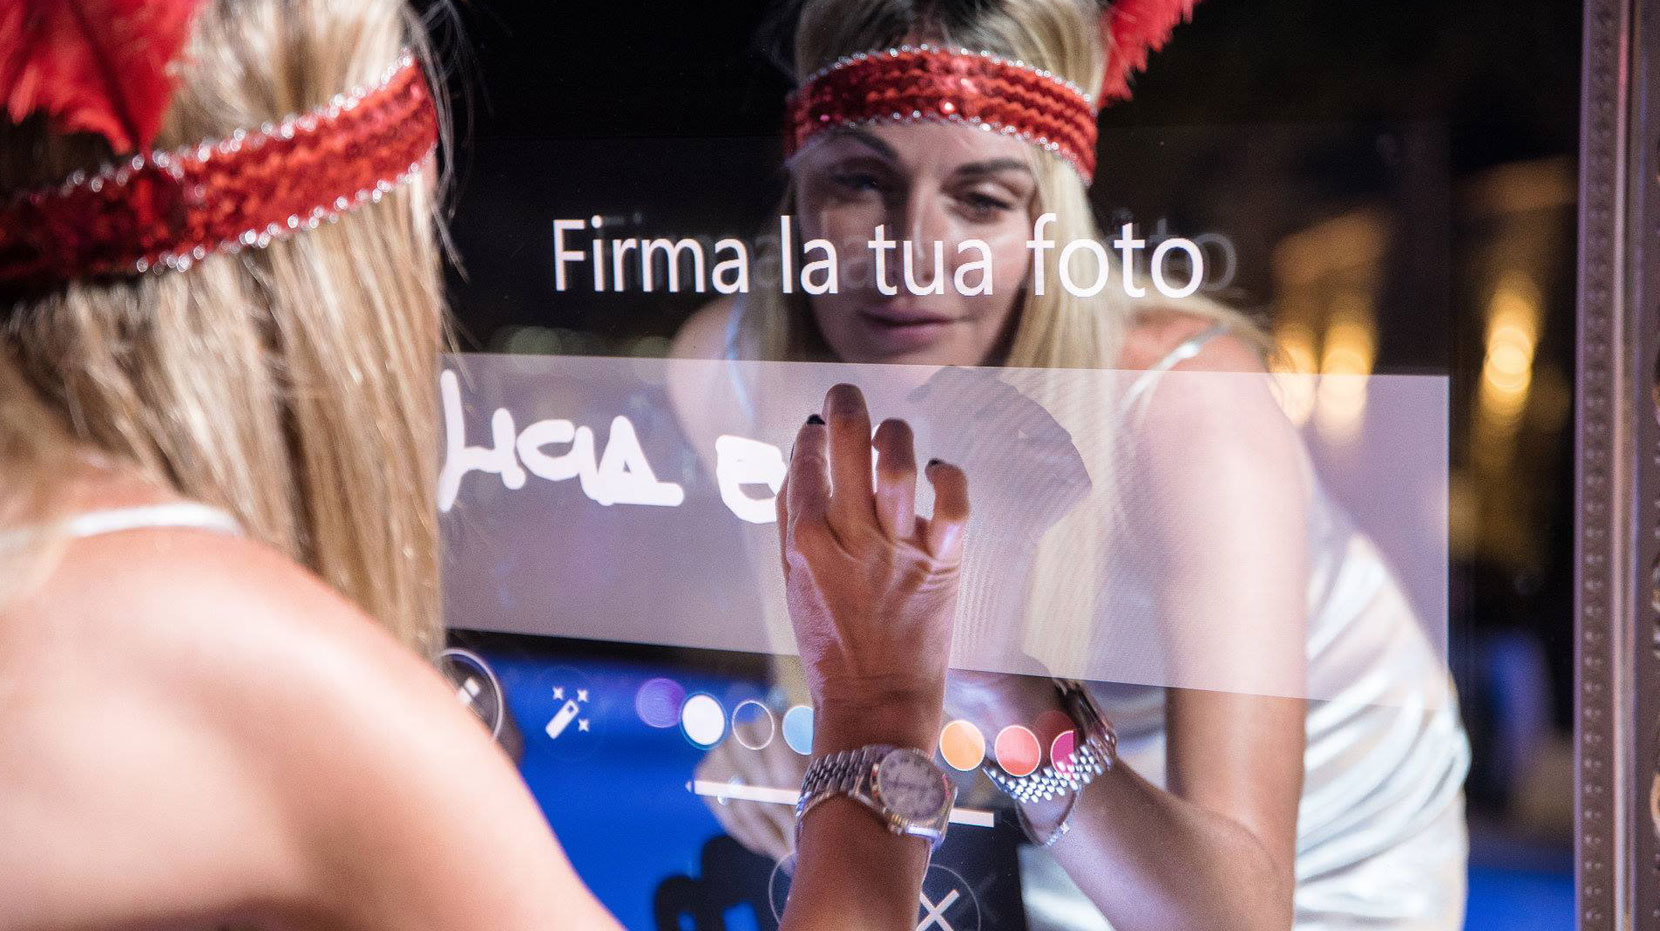 Magic Mirror Italia il Selfie Mirror per Eventi e Cerimonie in Italia